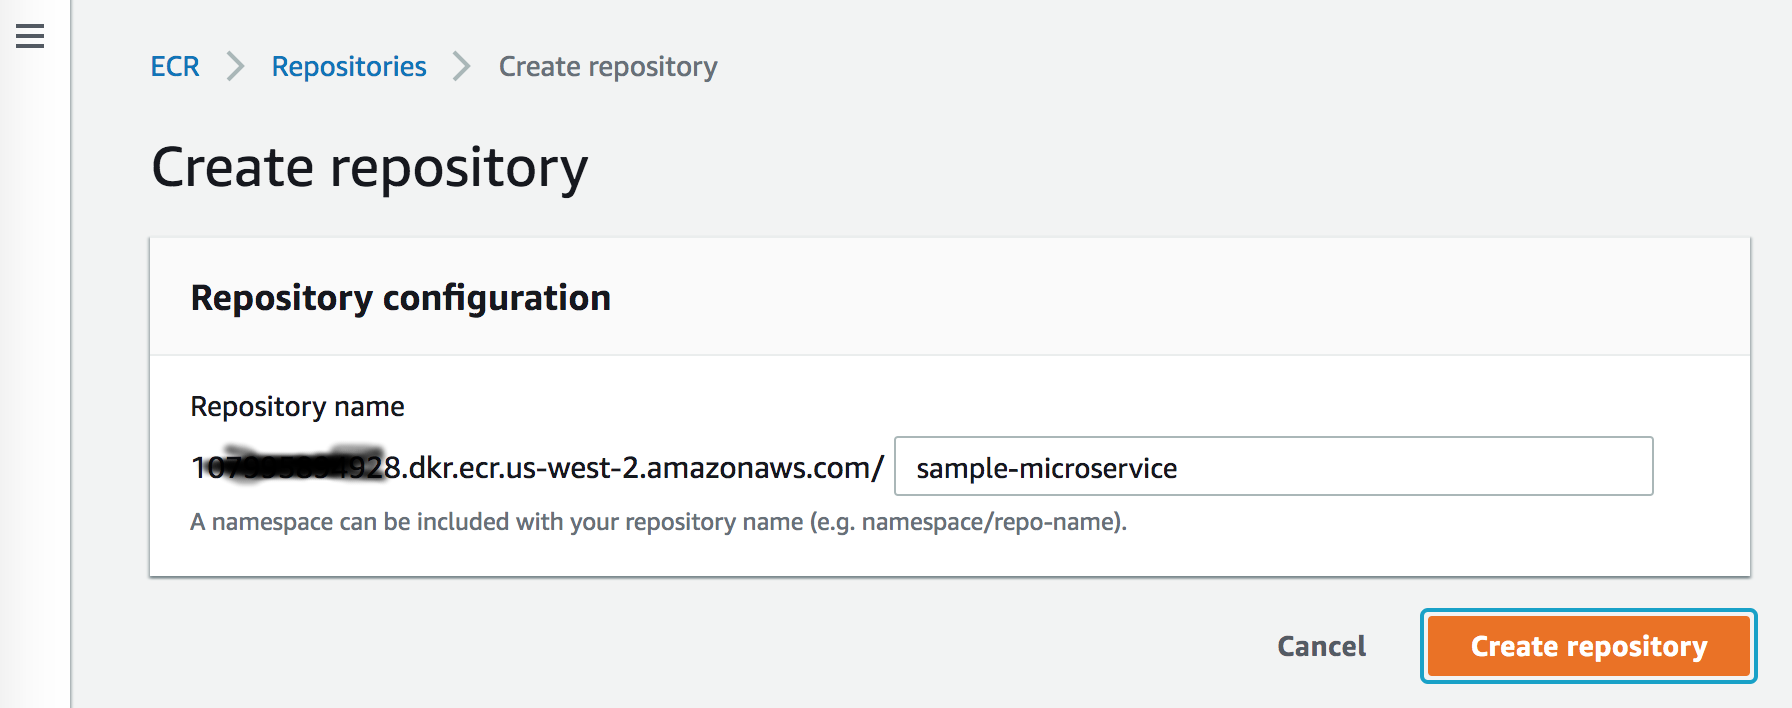 Build a Deployment Pipeline with Spinnaker on Kubernetes